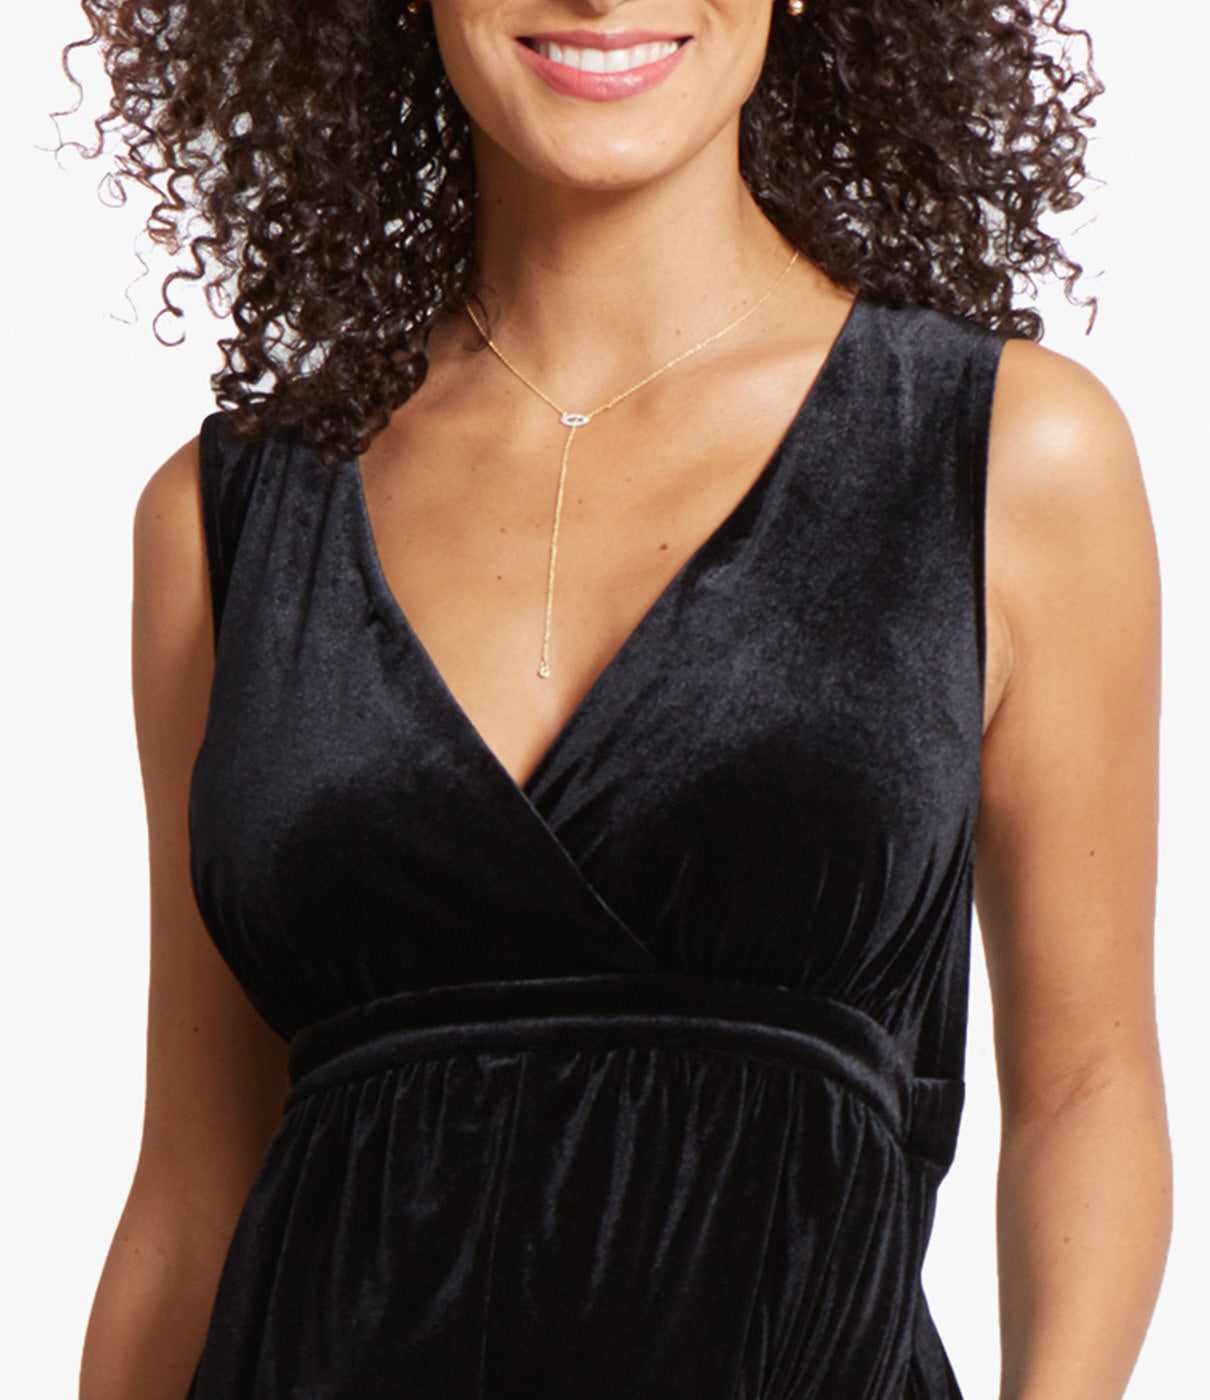 FASHION + FUNCTIONA crossover neckline makes this epic jumpsuit a postpartum score too—easy access for breastfeeding or pumping.